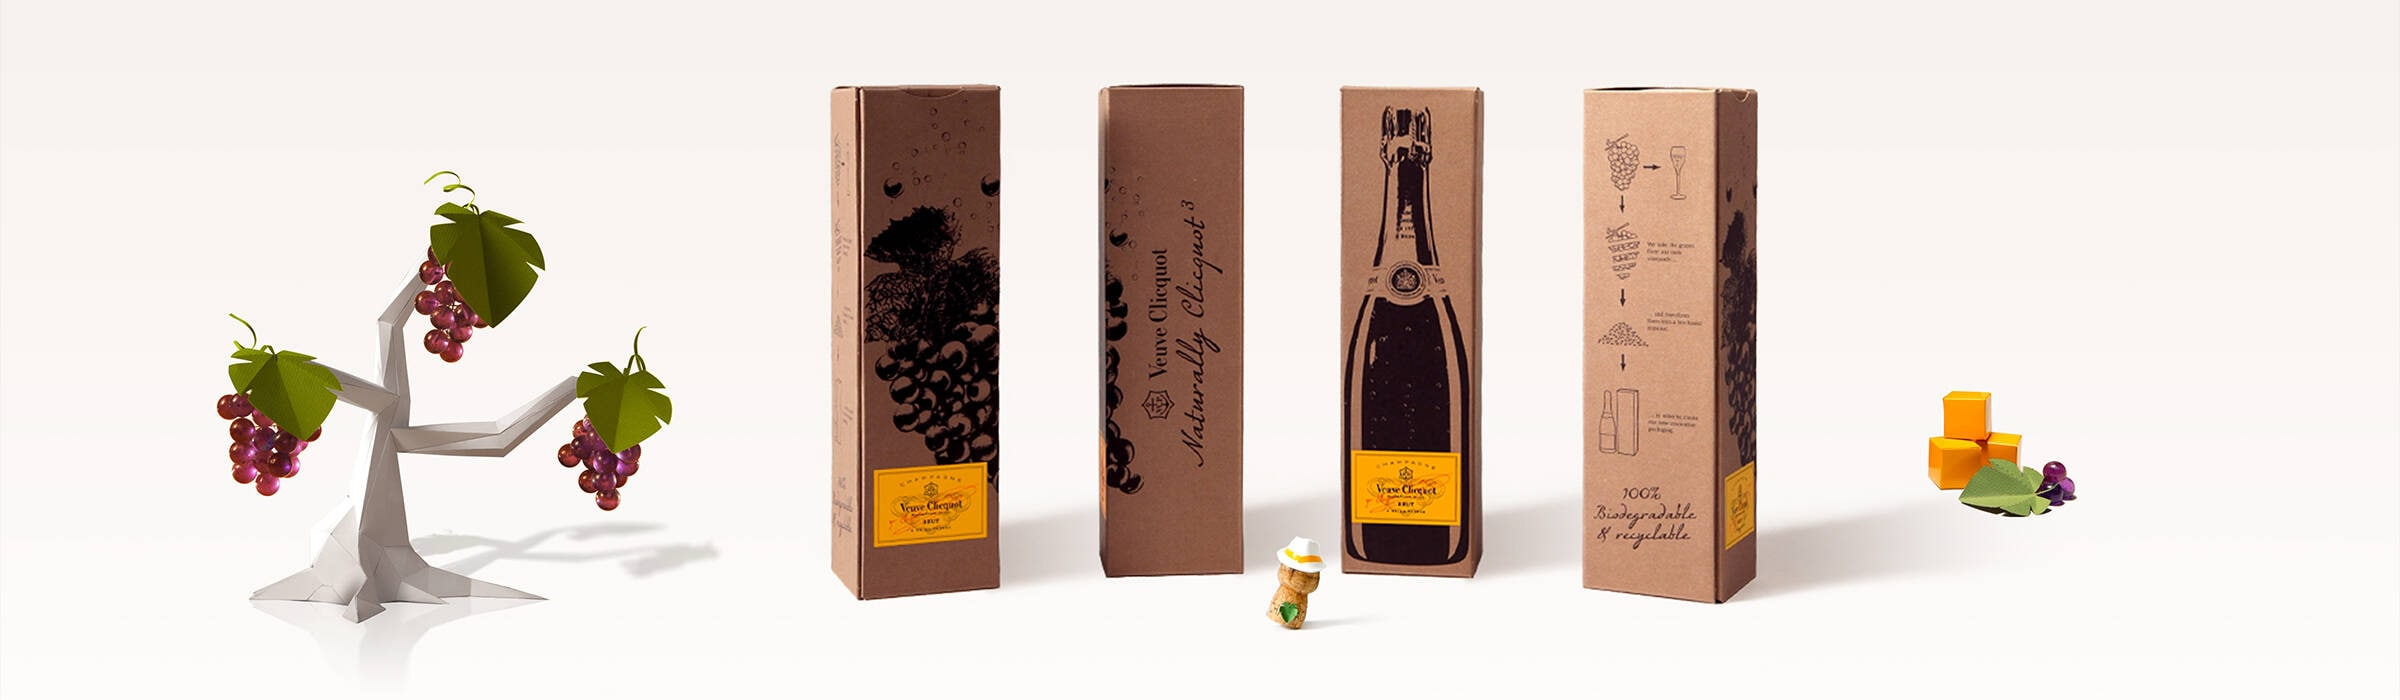 Veuve Clicquot - NATURALLY CLICQUOT